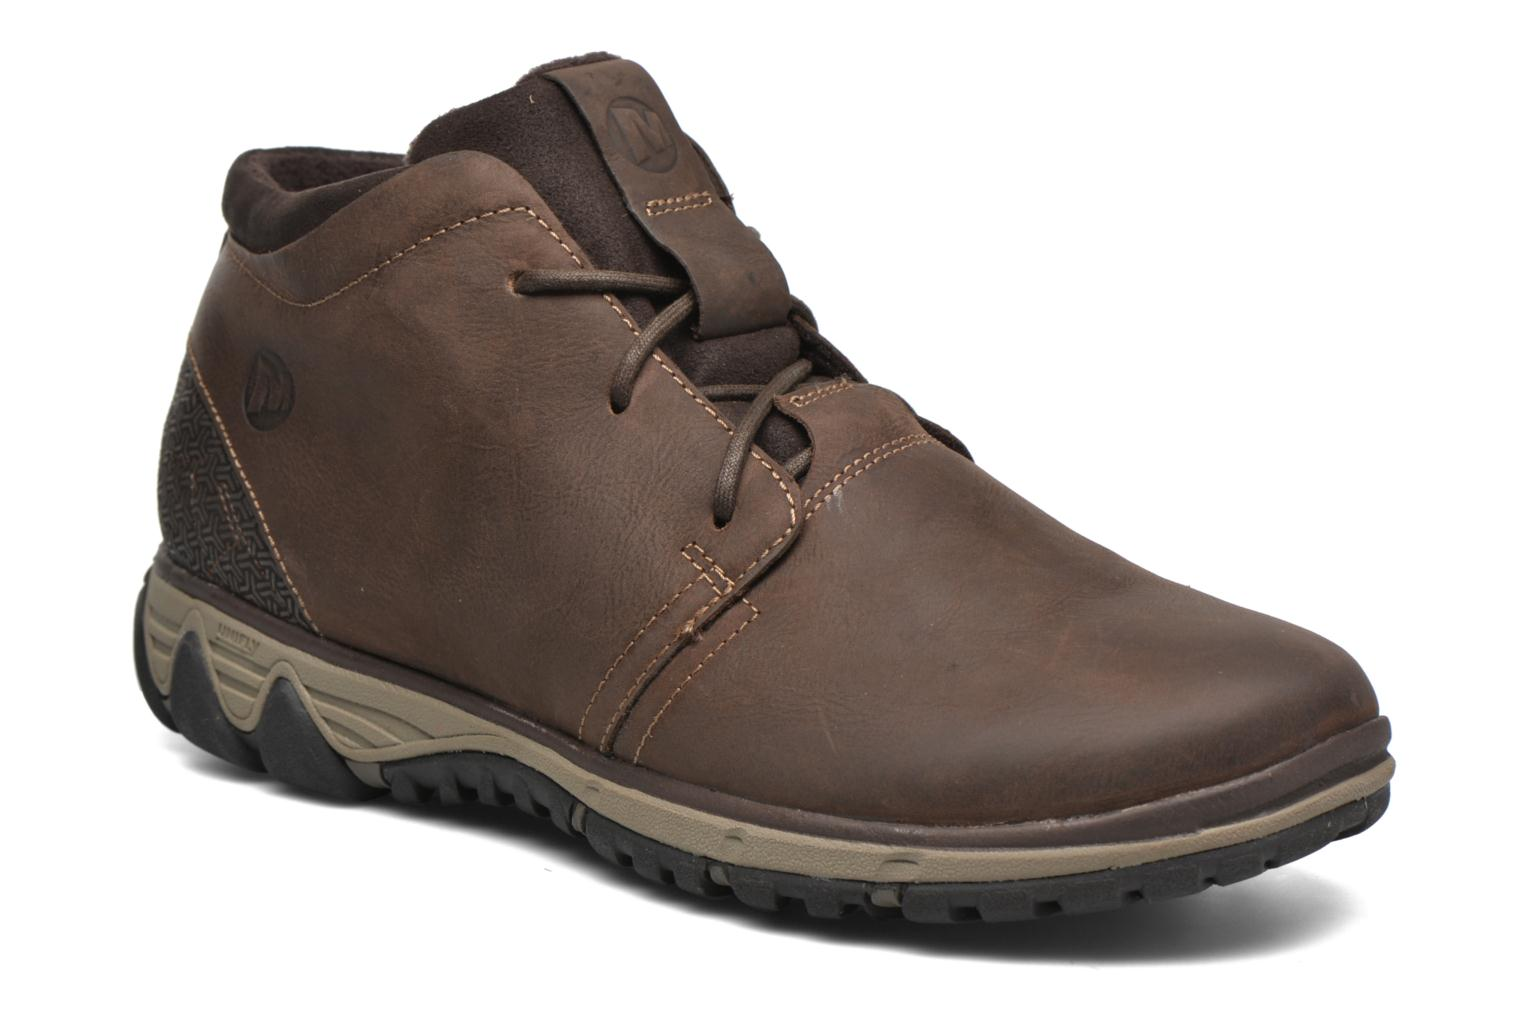 Sneakers All Out Blazer Chukka North by Merrell